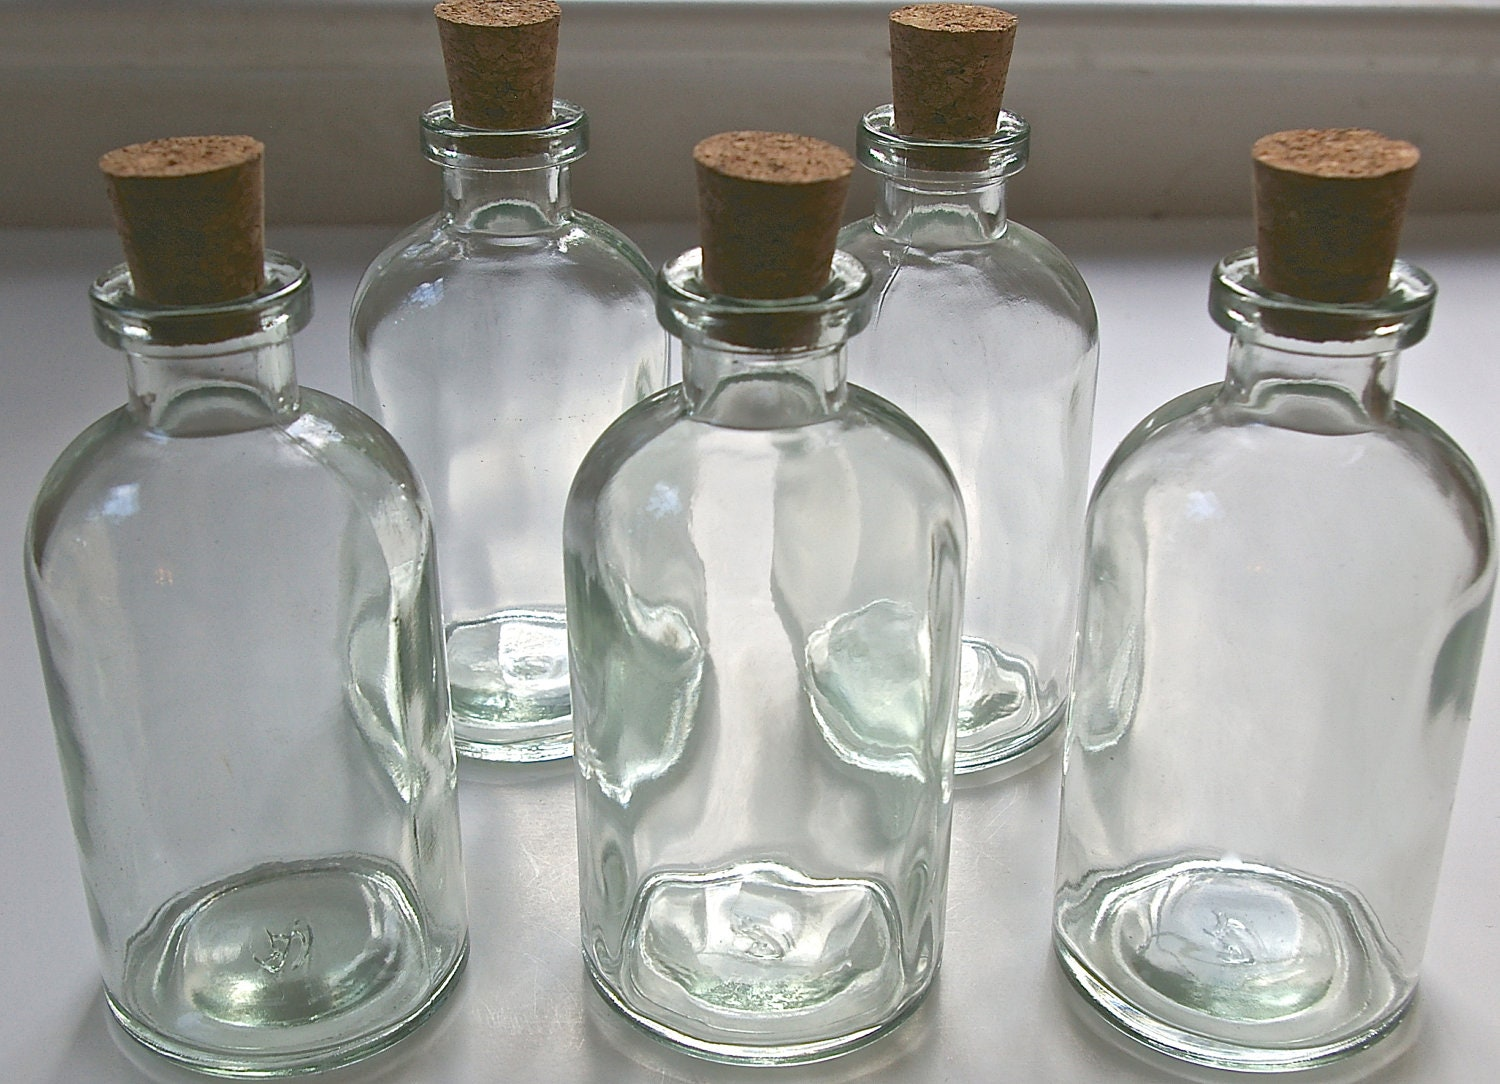 10 Glass Apothecary Bottles With Corks 8 Ounce 237ml Bath